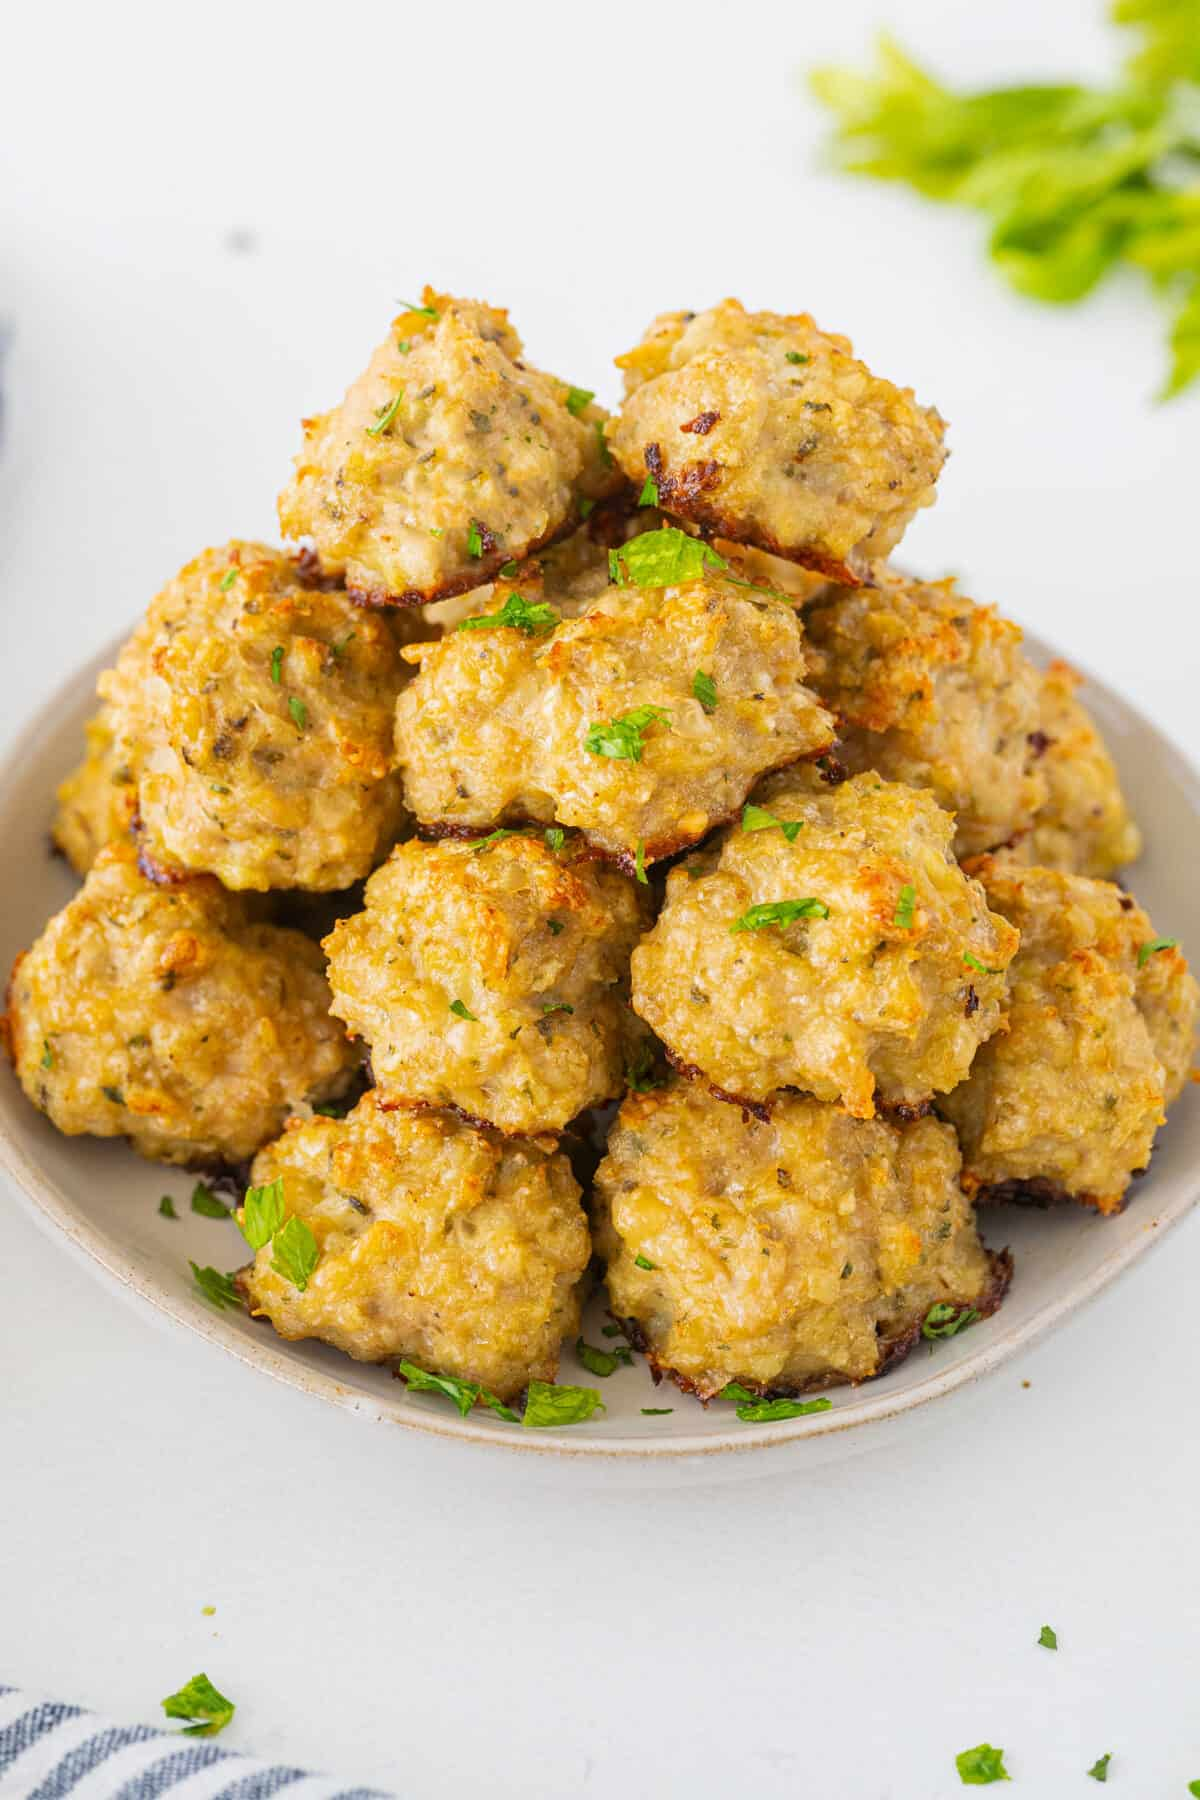 baked chicken meatballs on a white plate